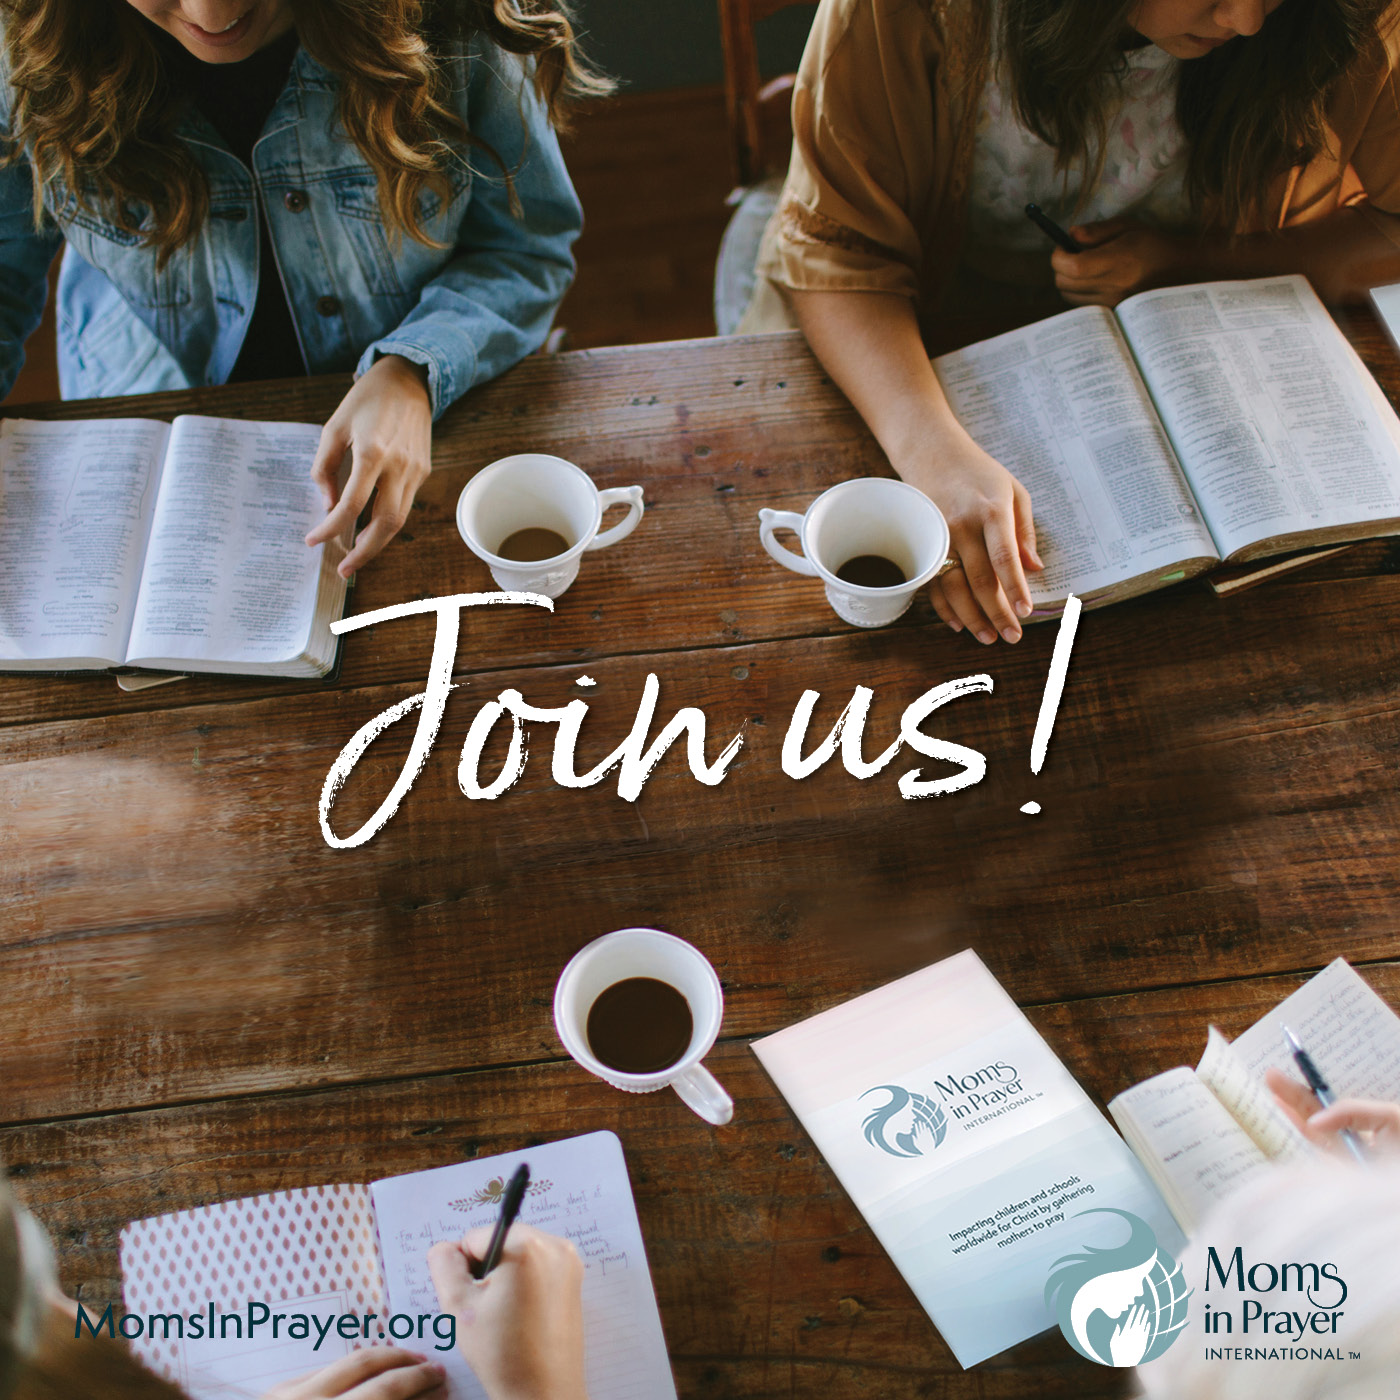 Join a community of praying moms